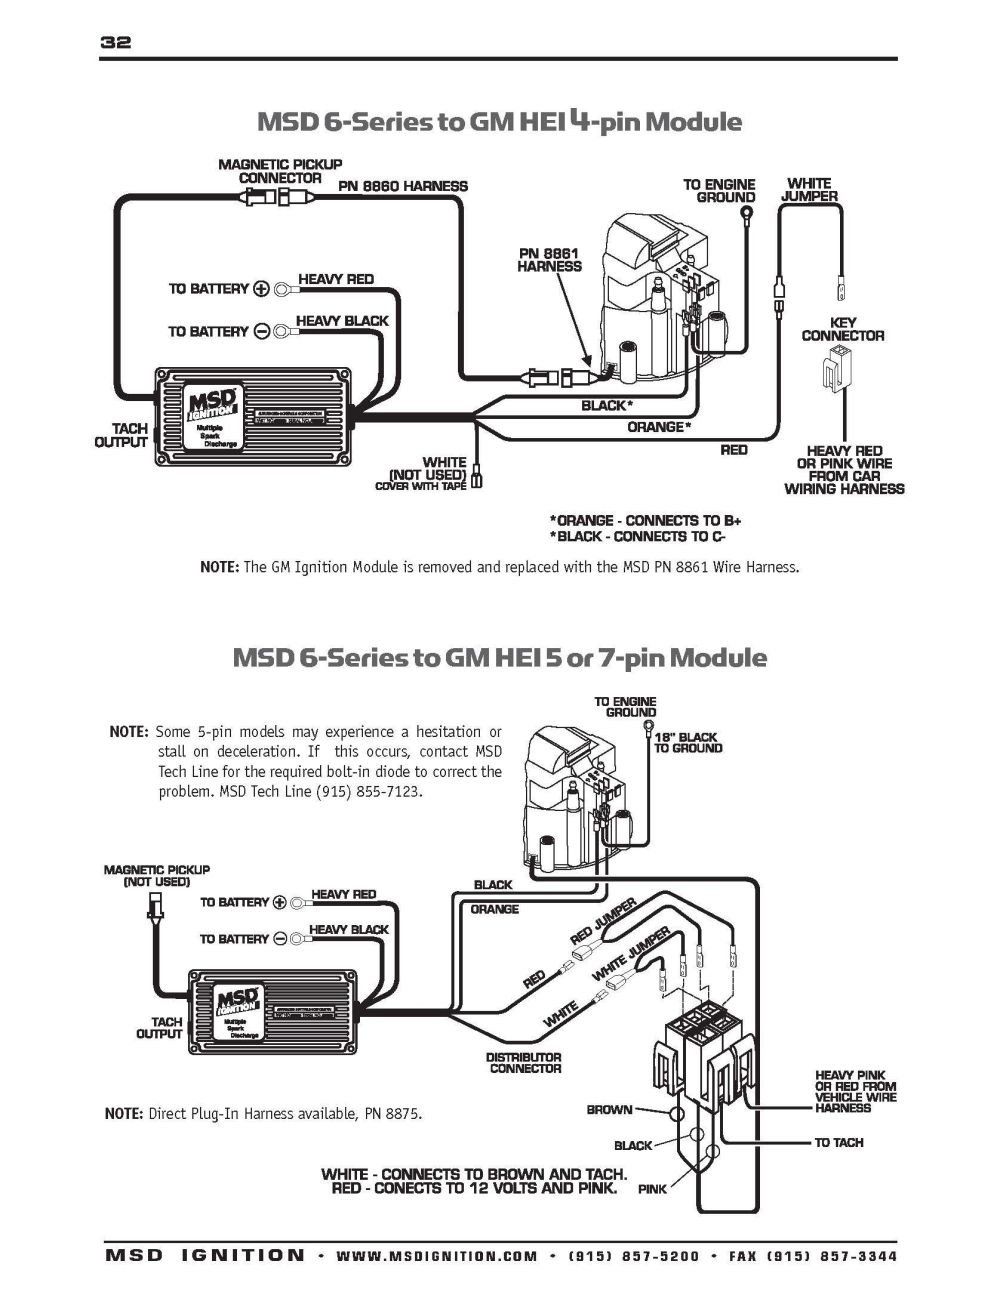 medium resolution of msd ignition wiring diagrams 1966 chevelle pinterest 1966 chevelle color wiring diagram wiring diagram for 1965